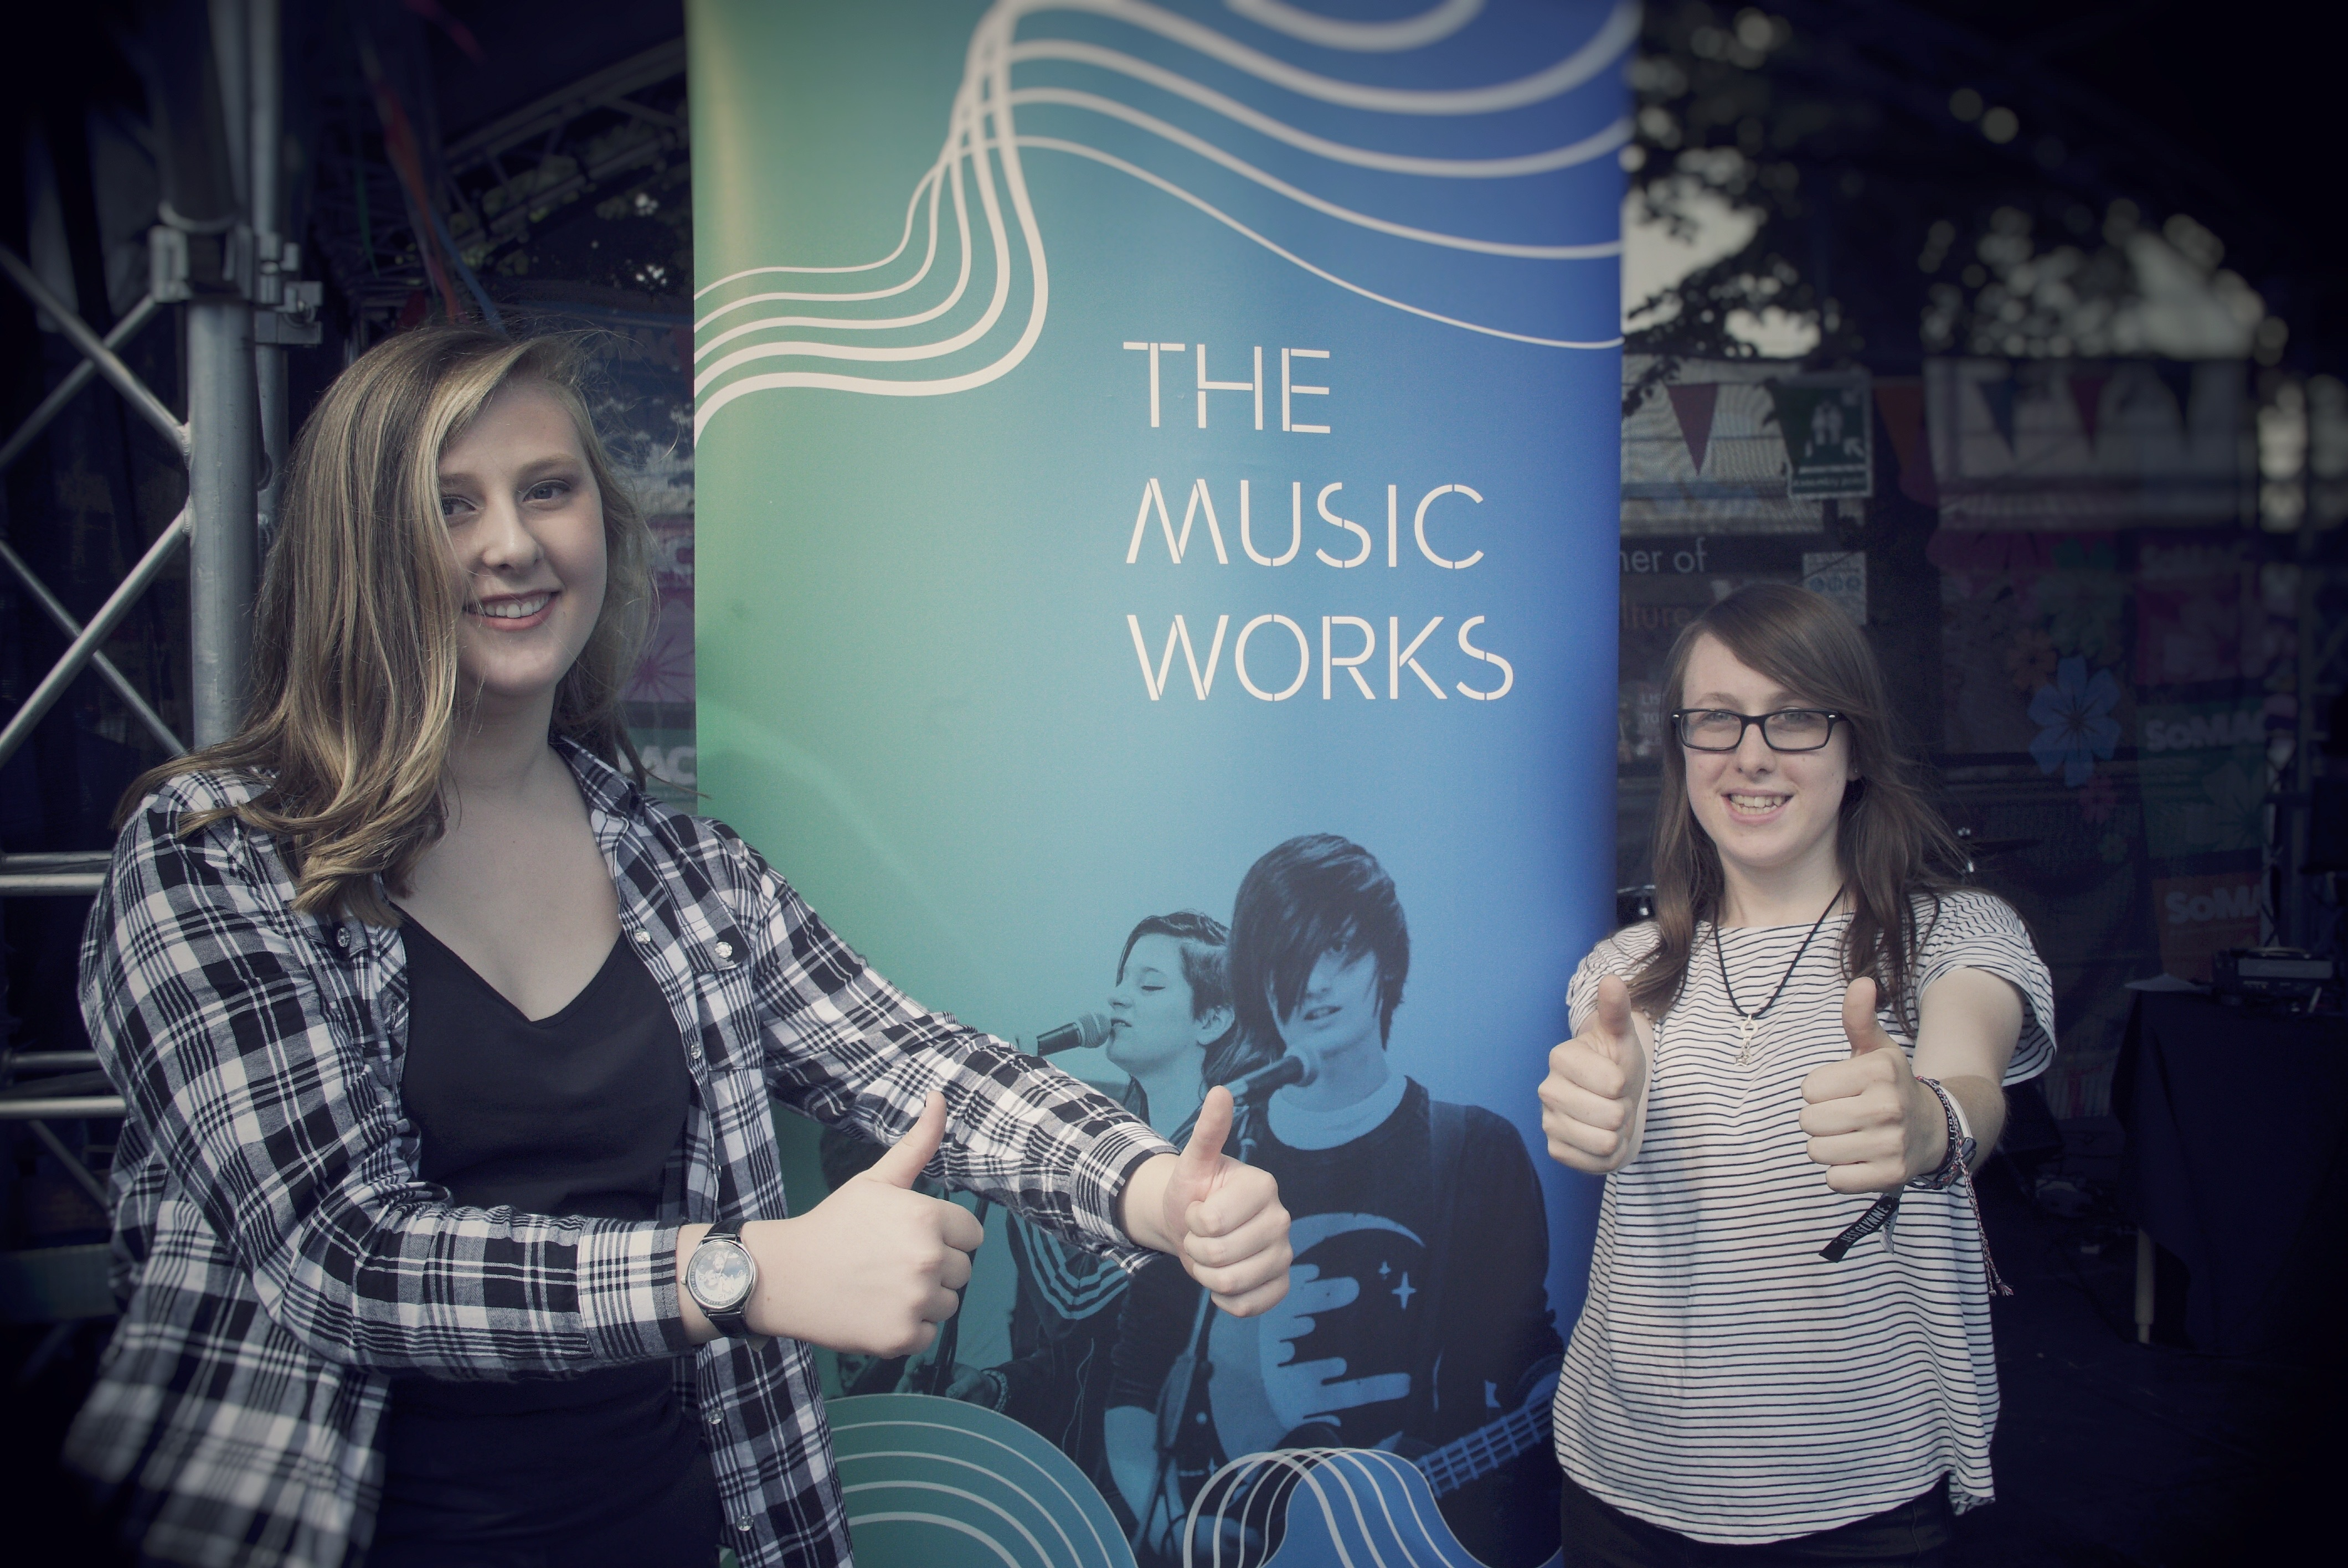 The Music Works image